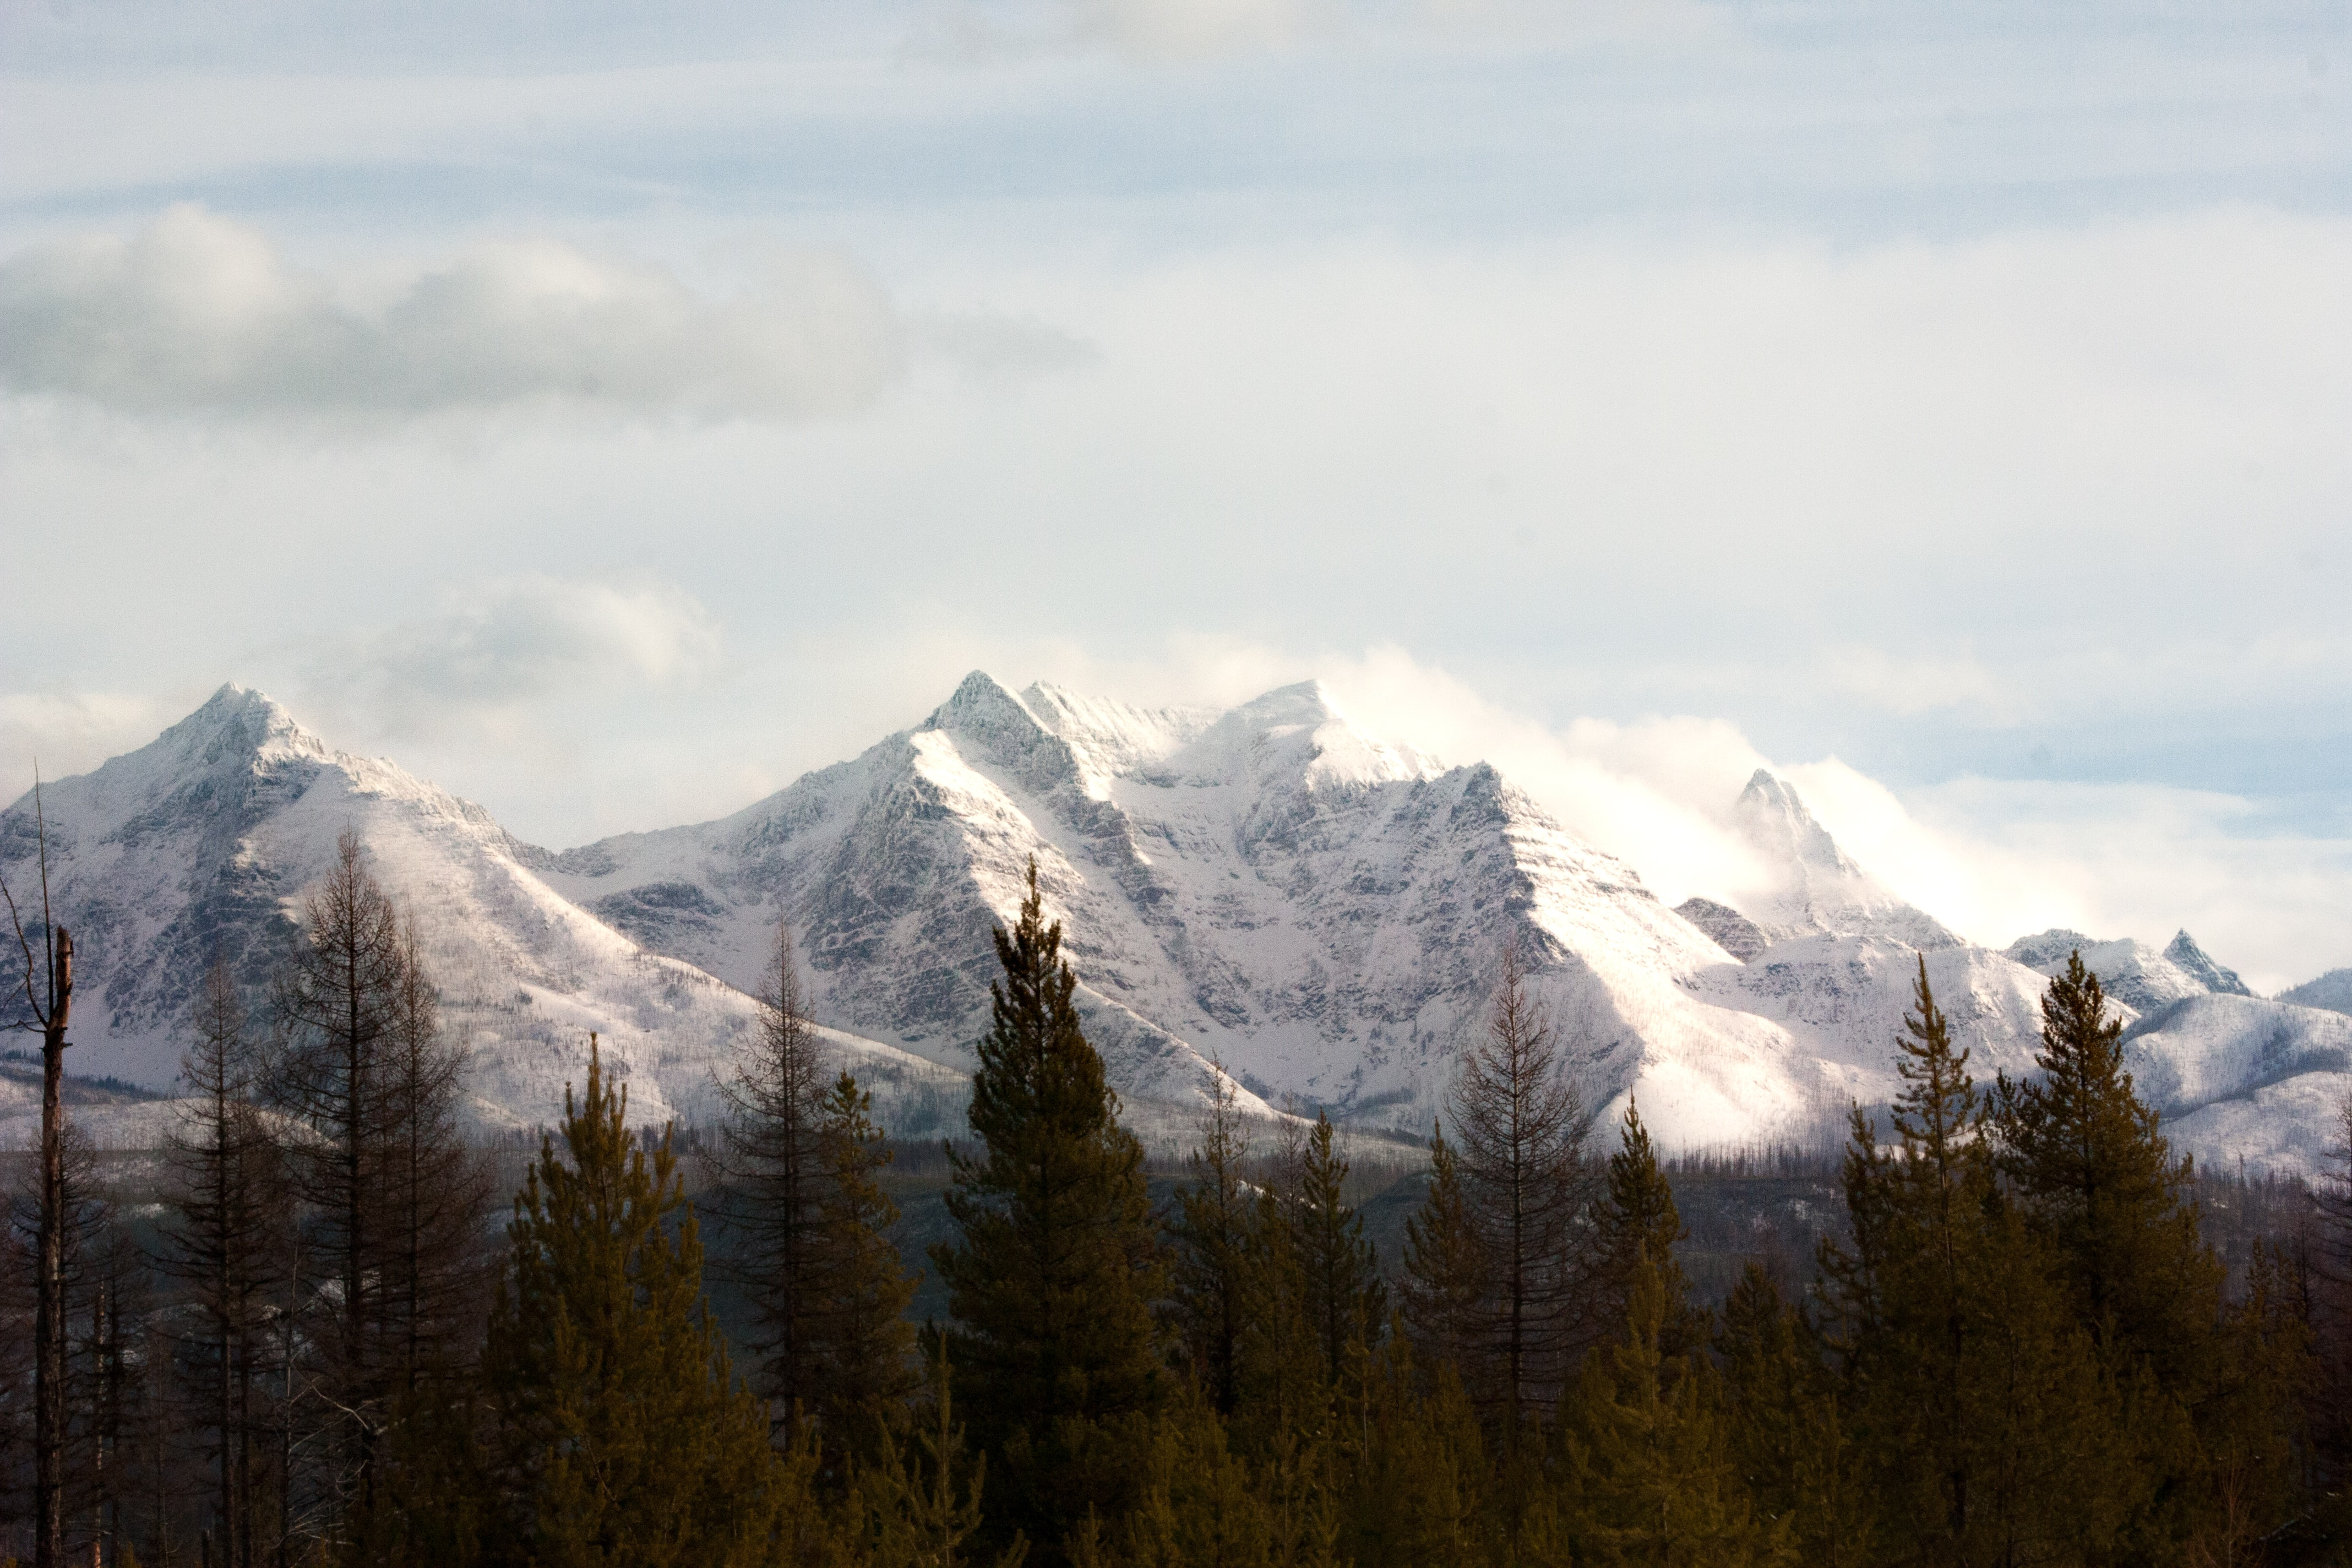 snow capped mountains near pine trees at daytime